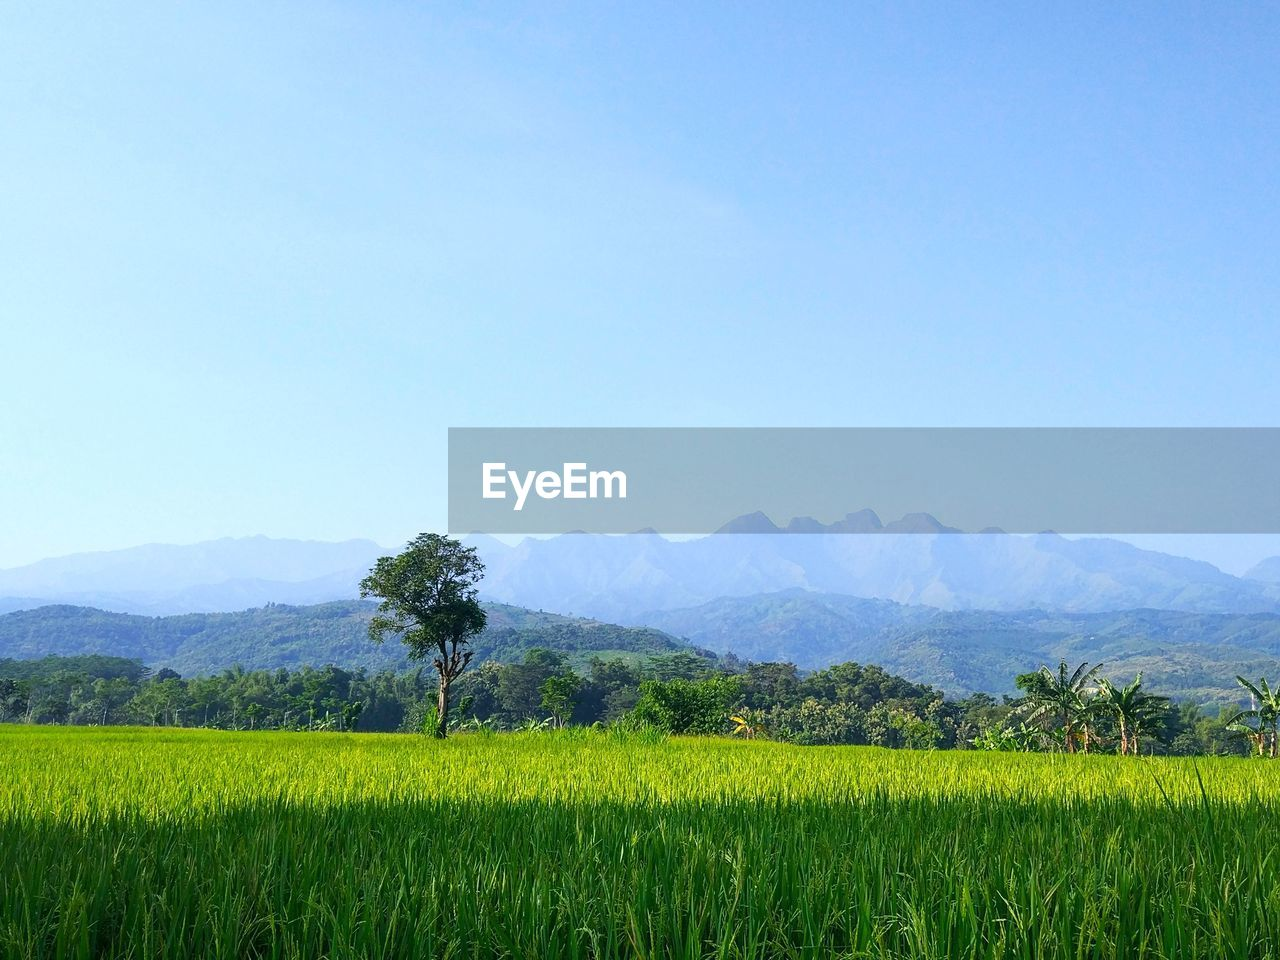 plant, beauty in nature, sky, landscape, field, scenics - nature, tranquil scene, land, growth, environment, tranquility, tree, clear sky, agriculture, rural scene, mountain, crop, nature, green color, copy space, farm, yellow, no people, mountain range, outdoors, plantation